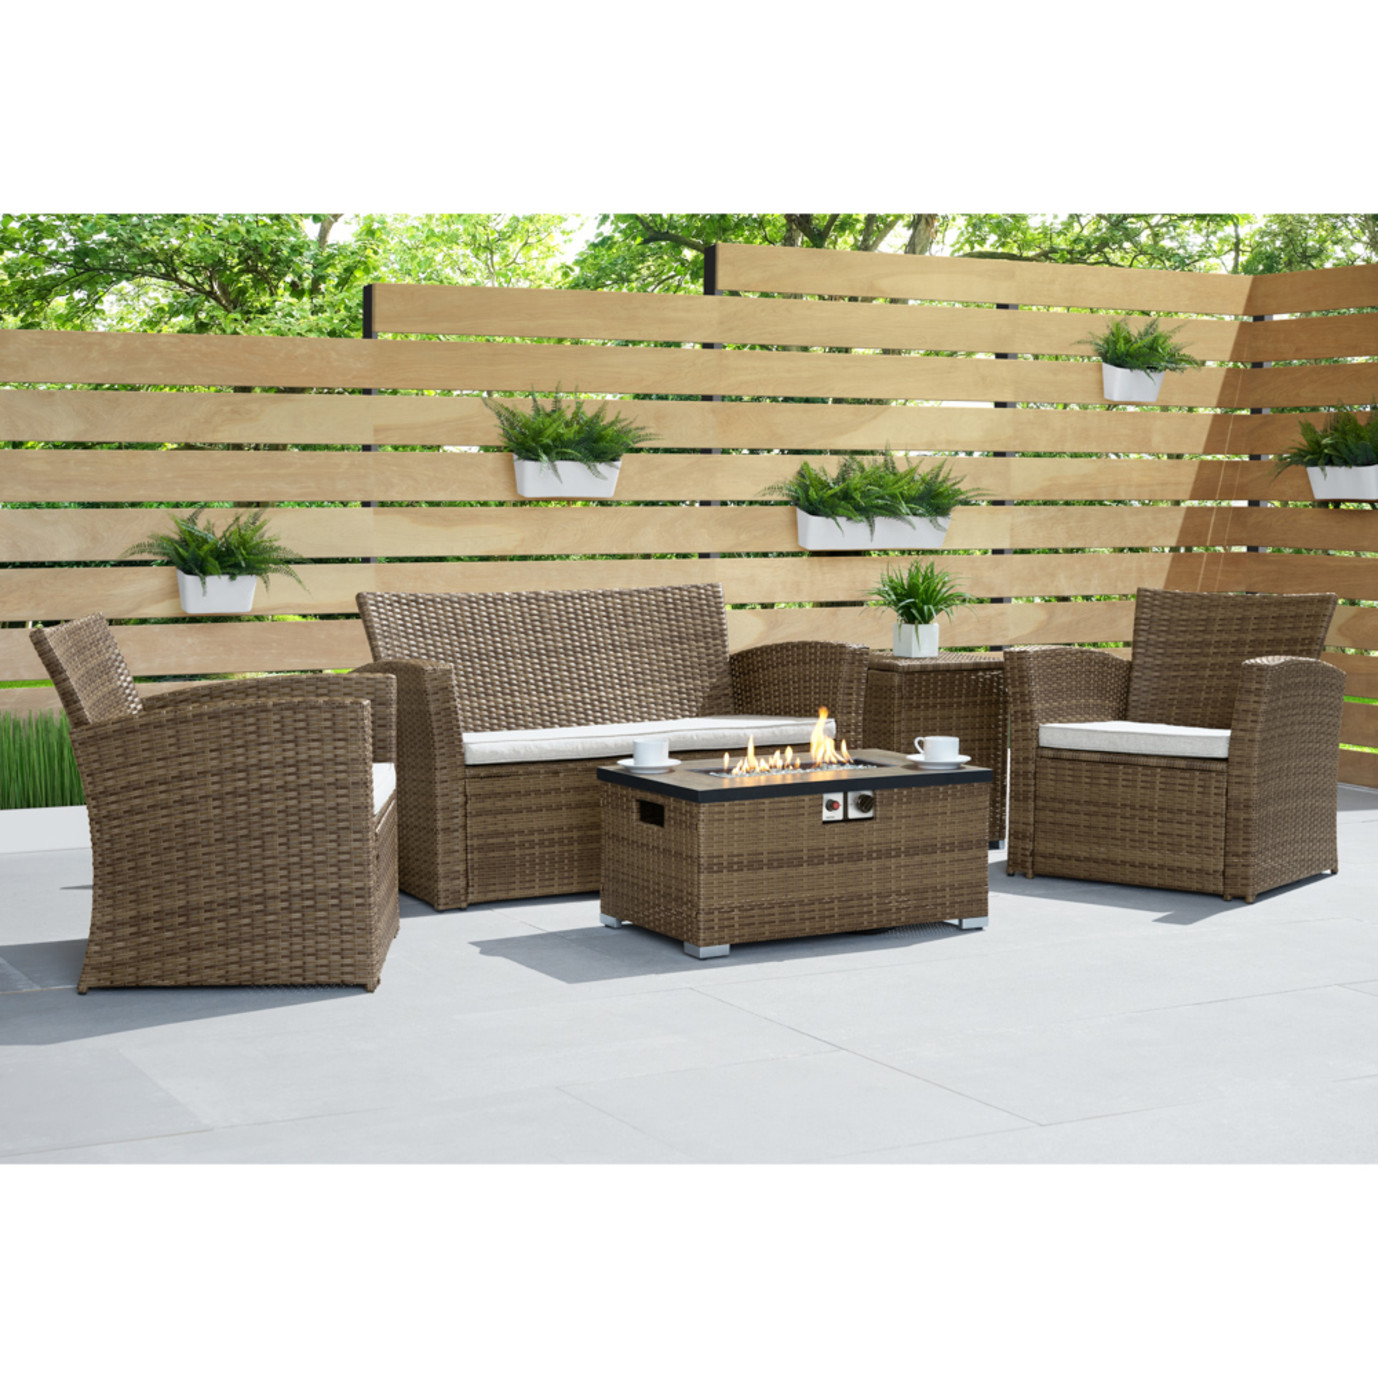 Sego Lily™ Magna 4 Piece Fire Seating Set - Brown